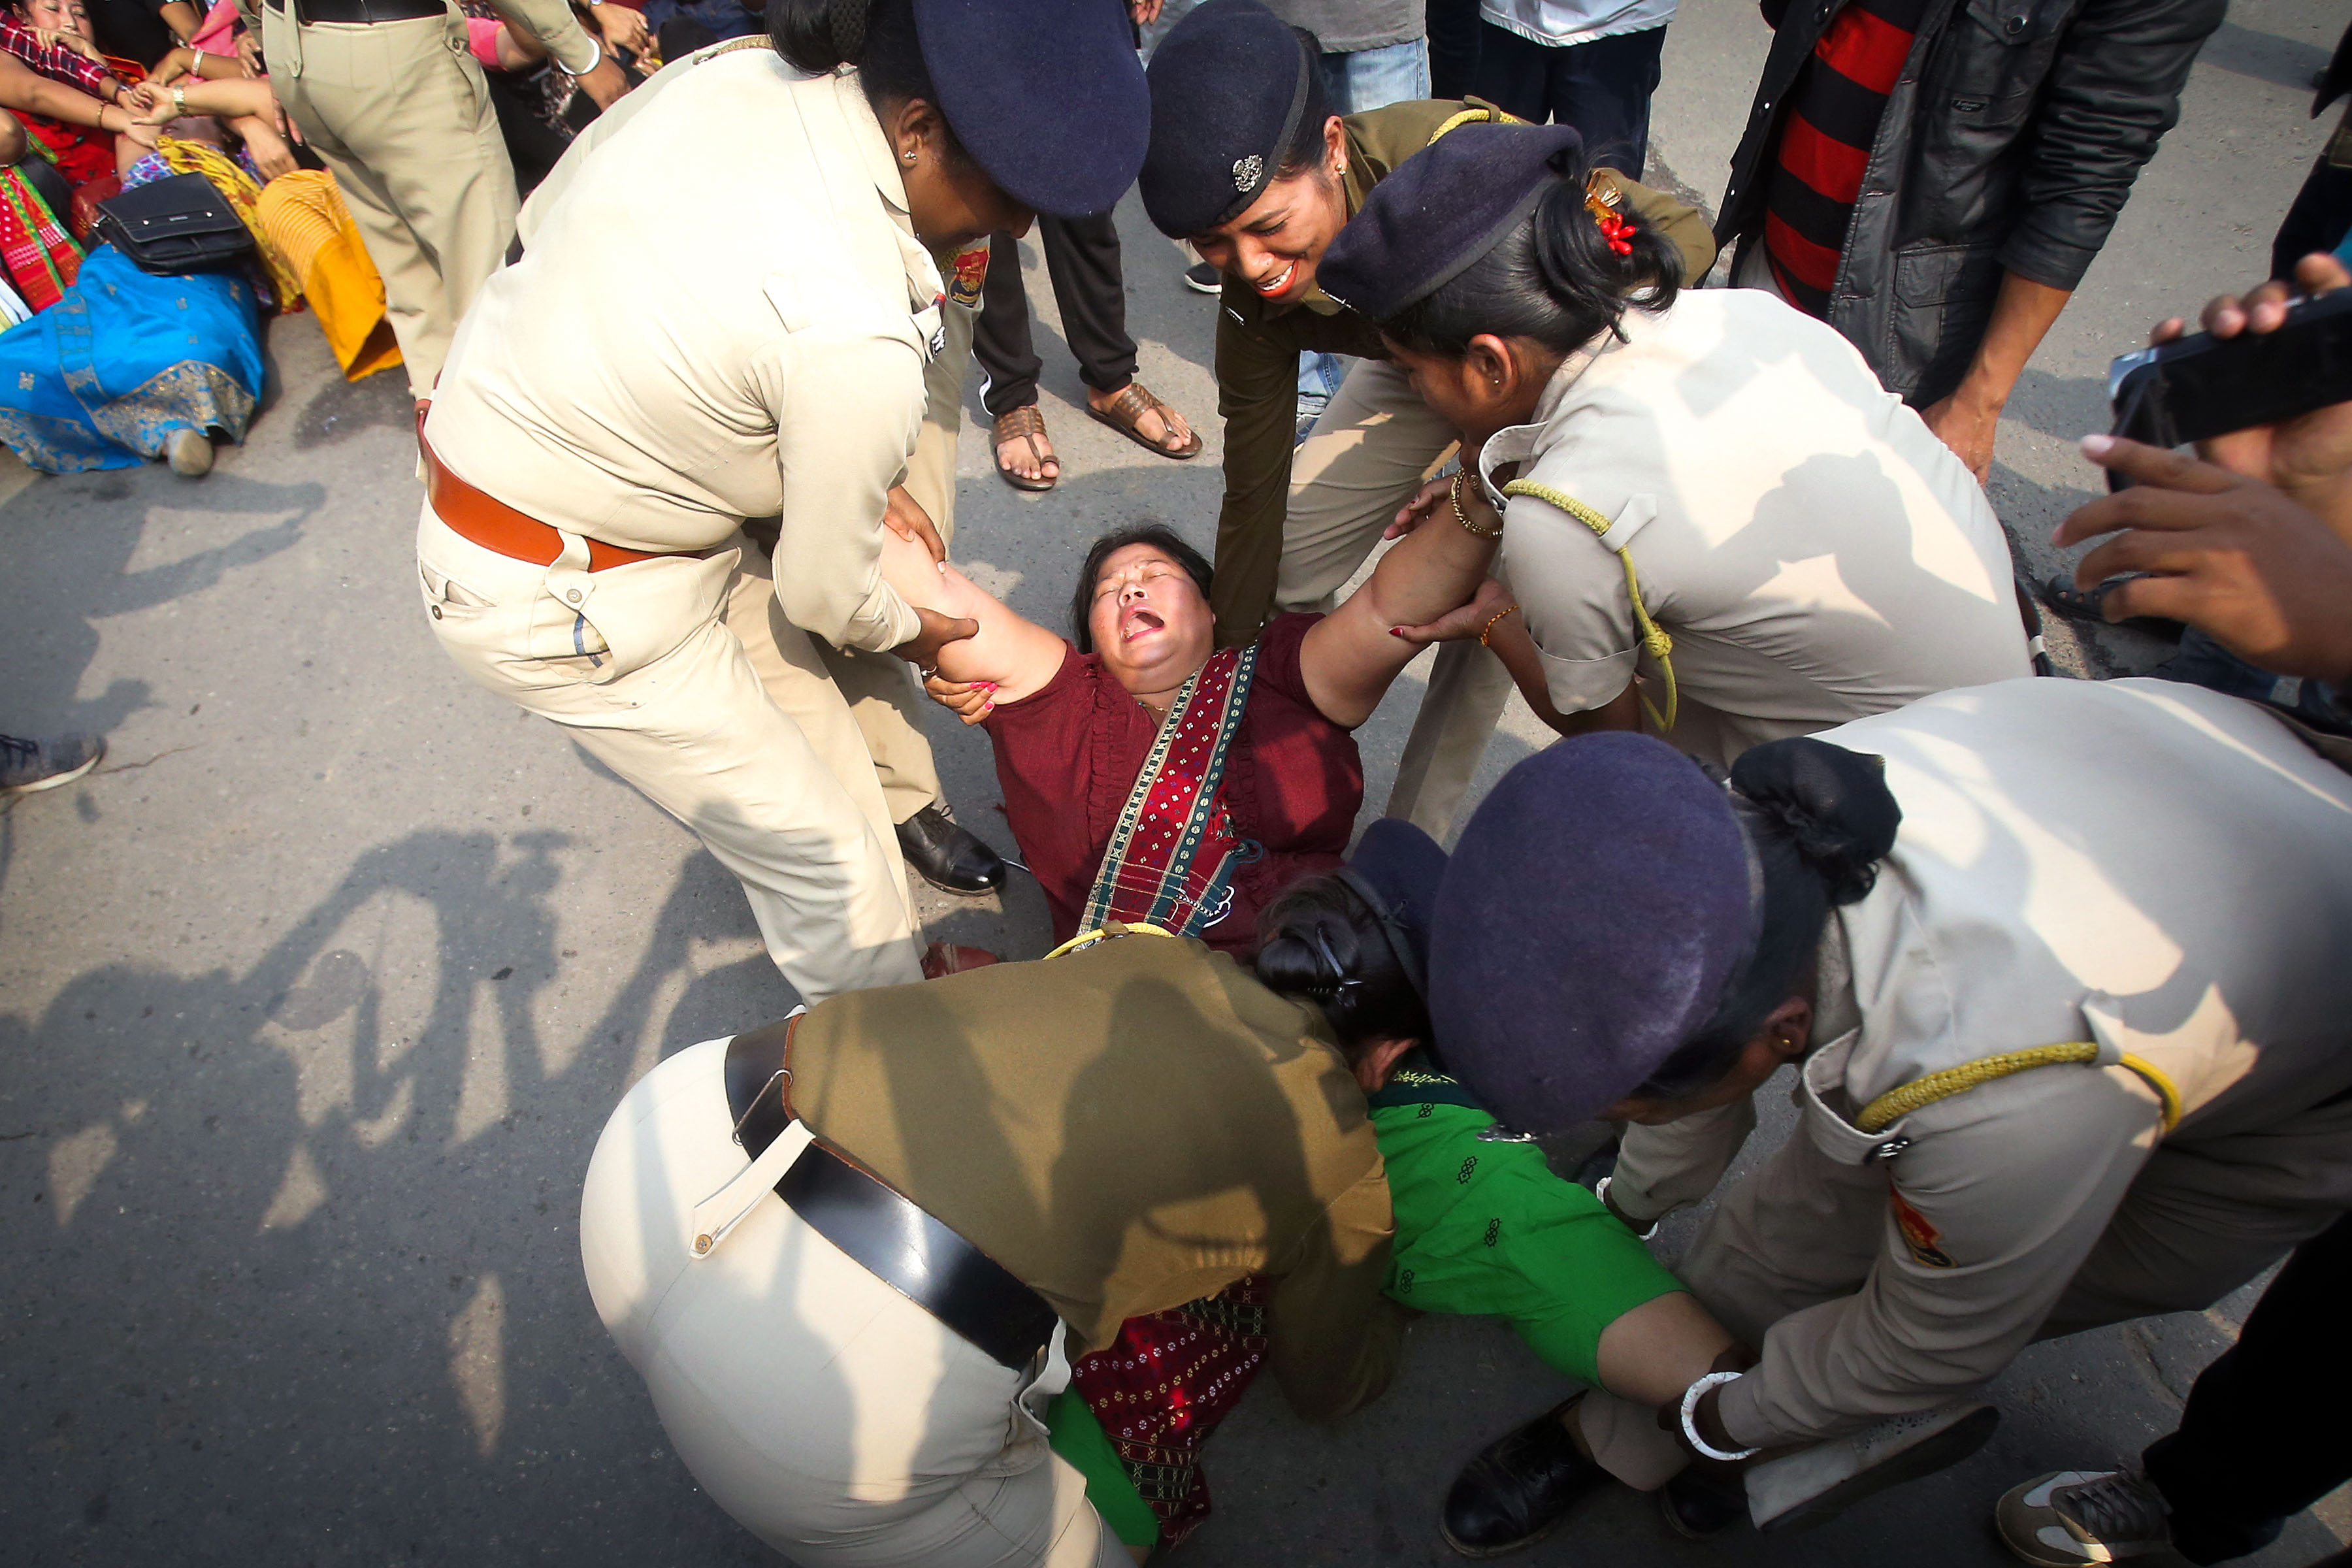 10 December 2019: A demonstrator in Agartala, India, being detained by the police during a protest against the Citizenship Amendment Bill. (Photograph by Reuters/Jayanta Dey)